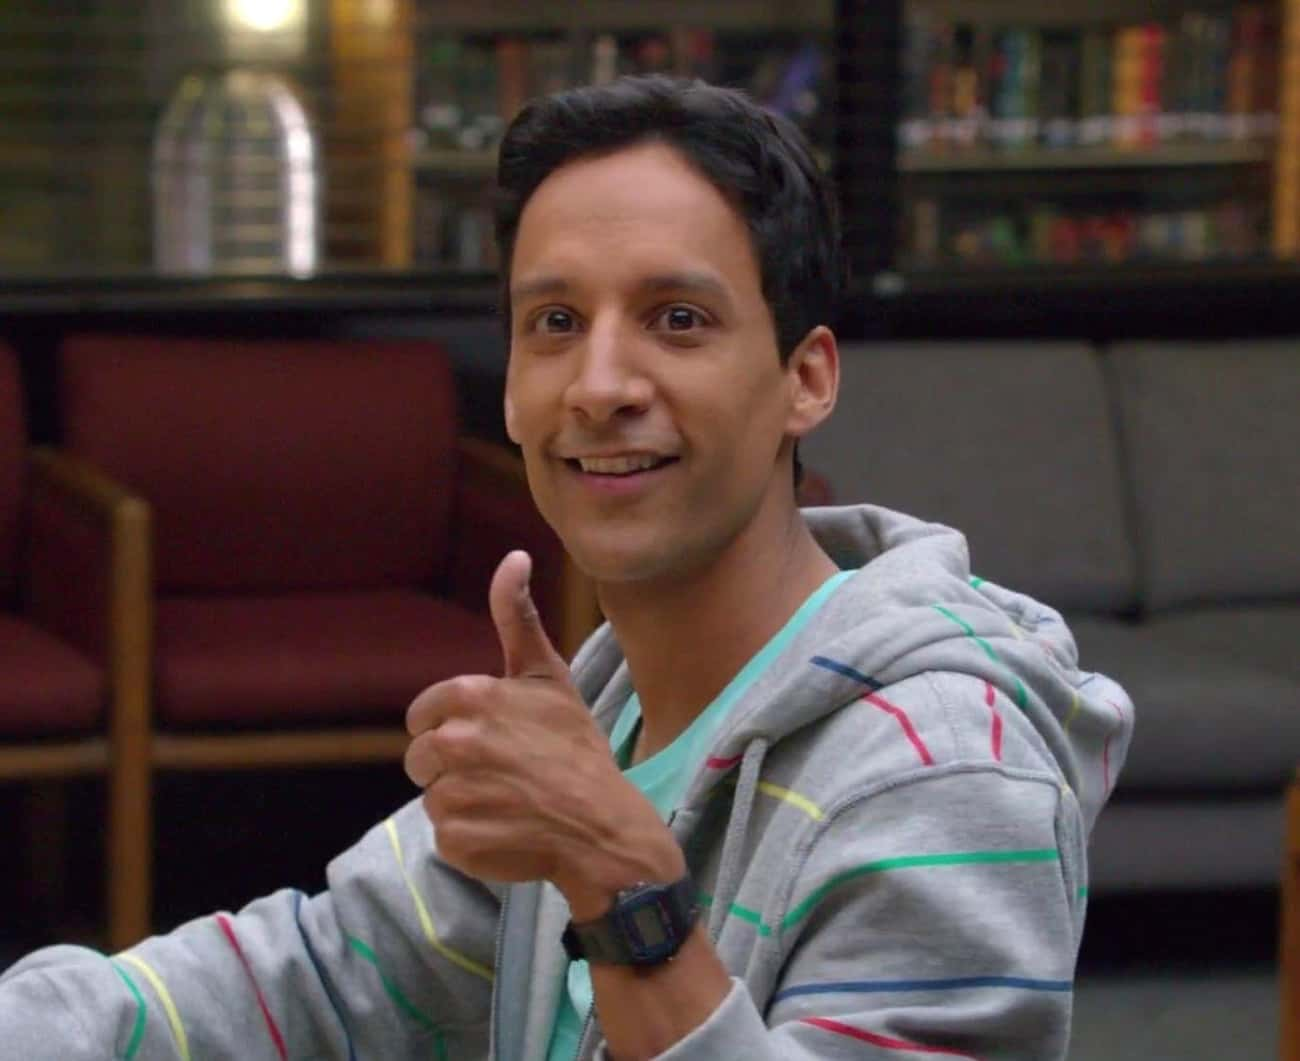 Abed Knows Someone's Filming Him